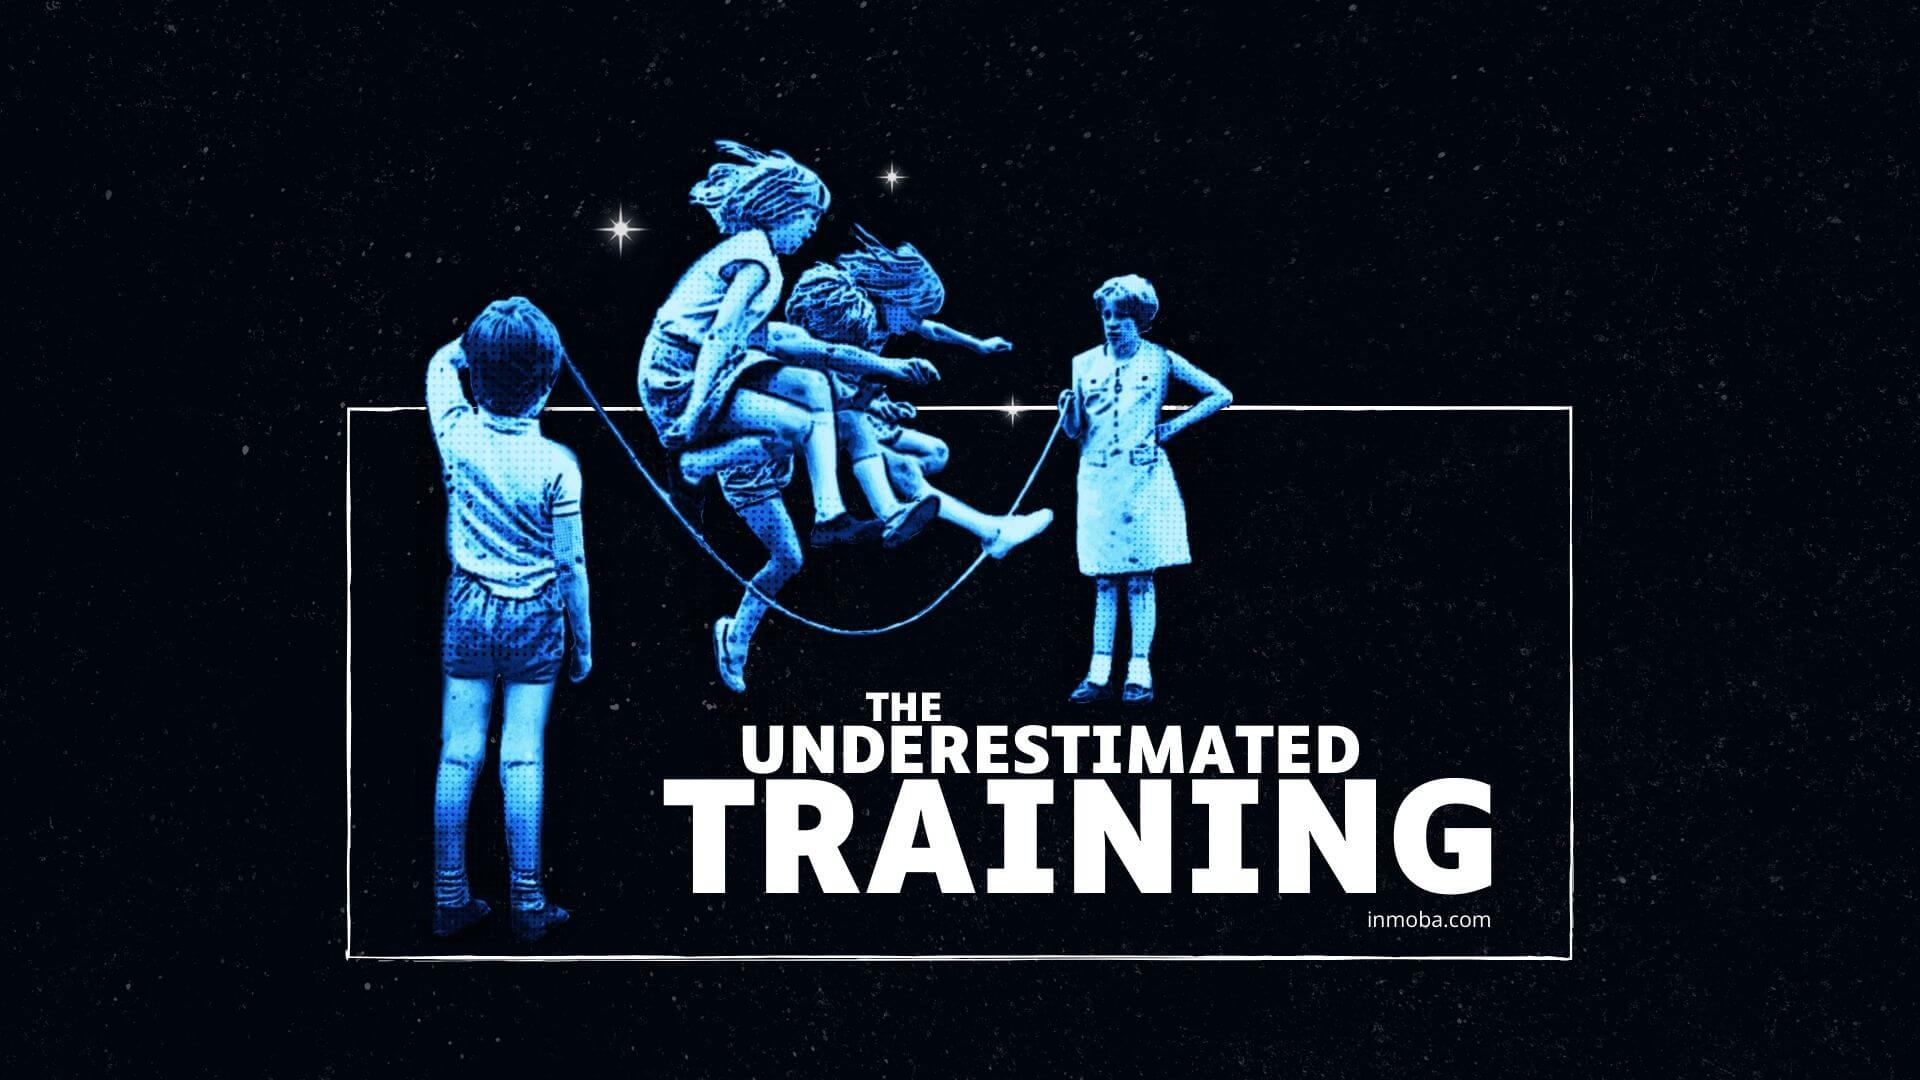 The underestimated training - Inmoba